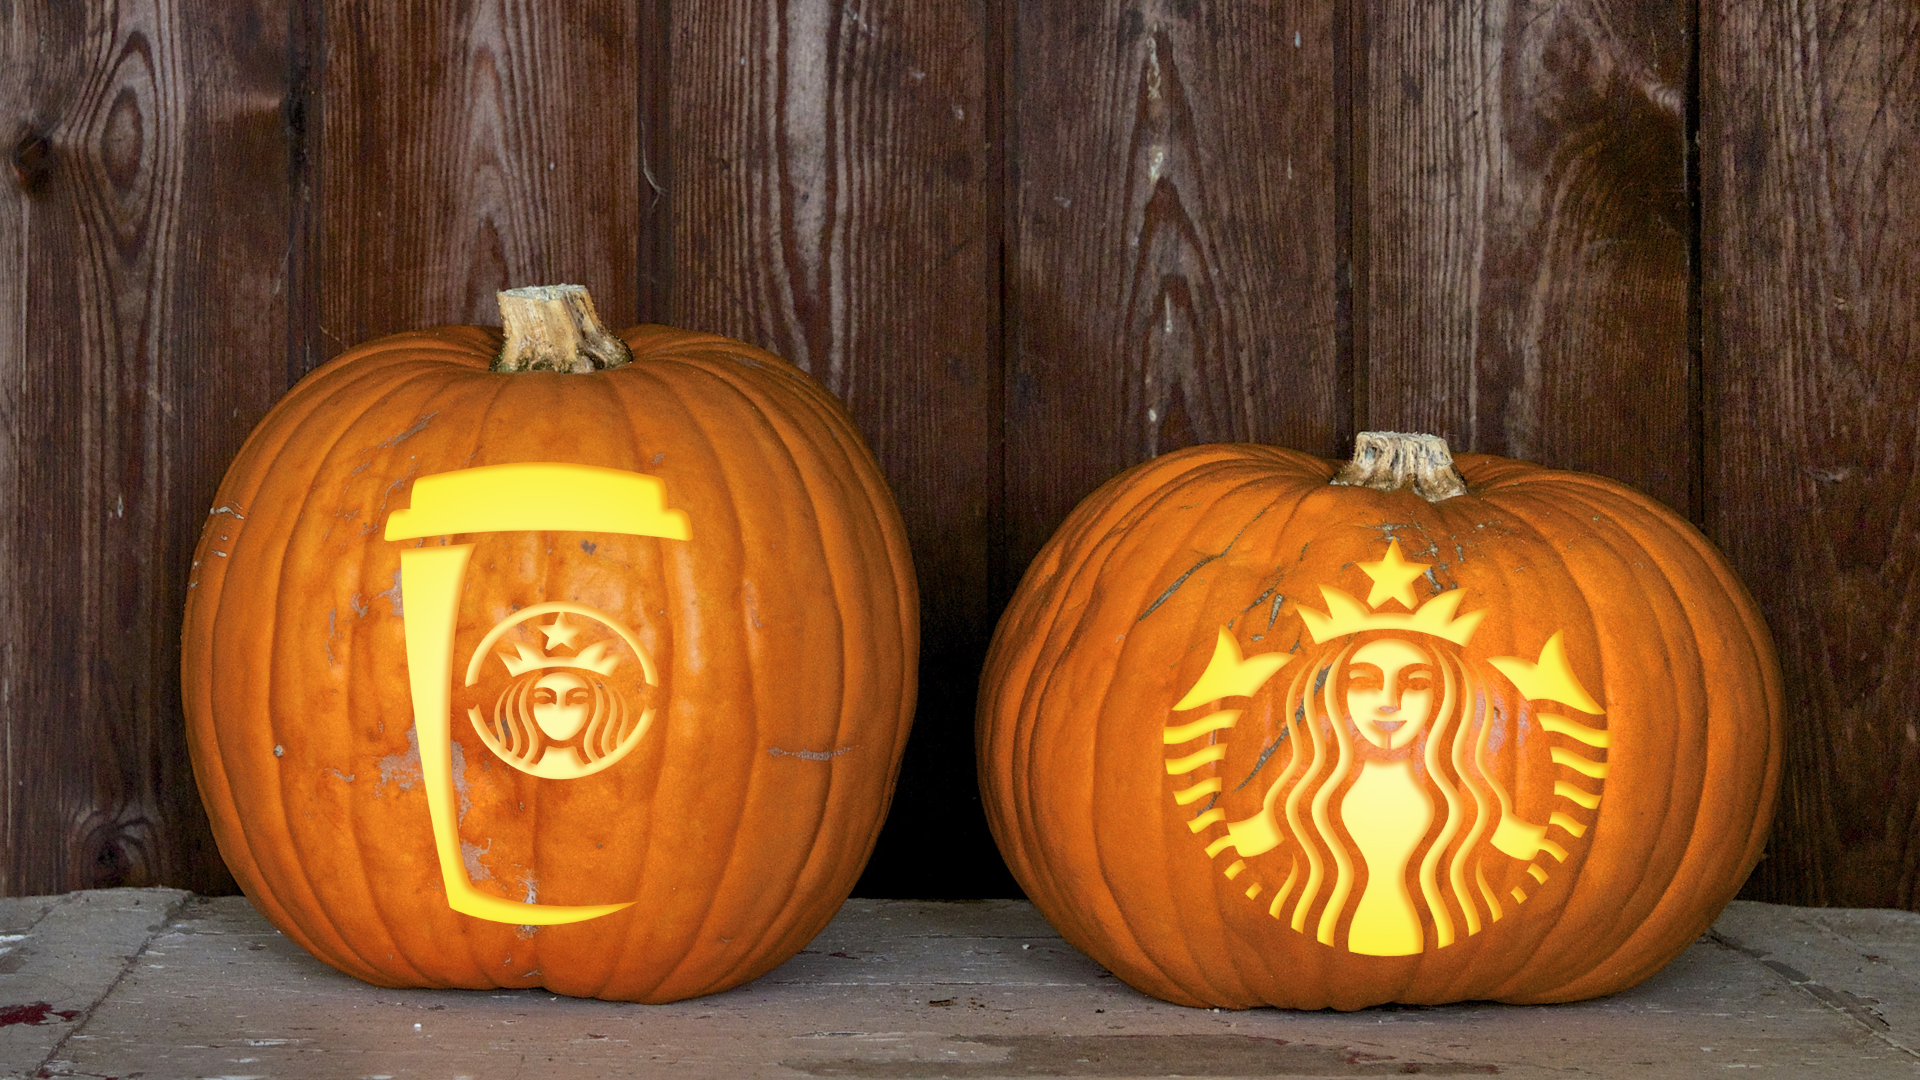 Pop culture pumpkin carving templates only adults can